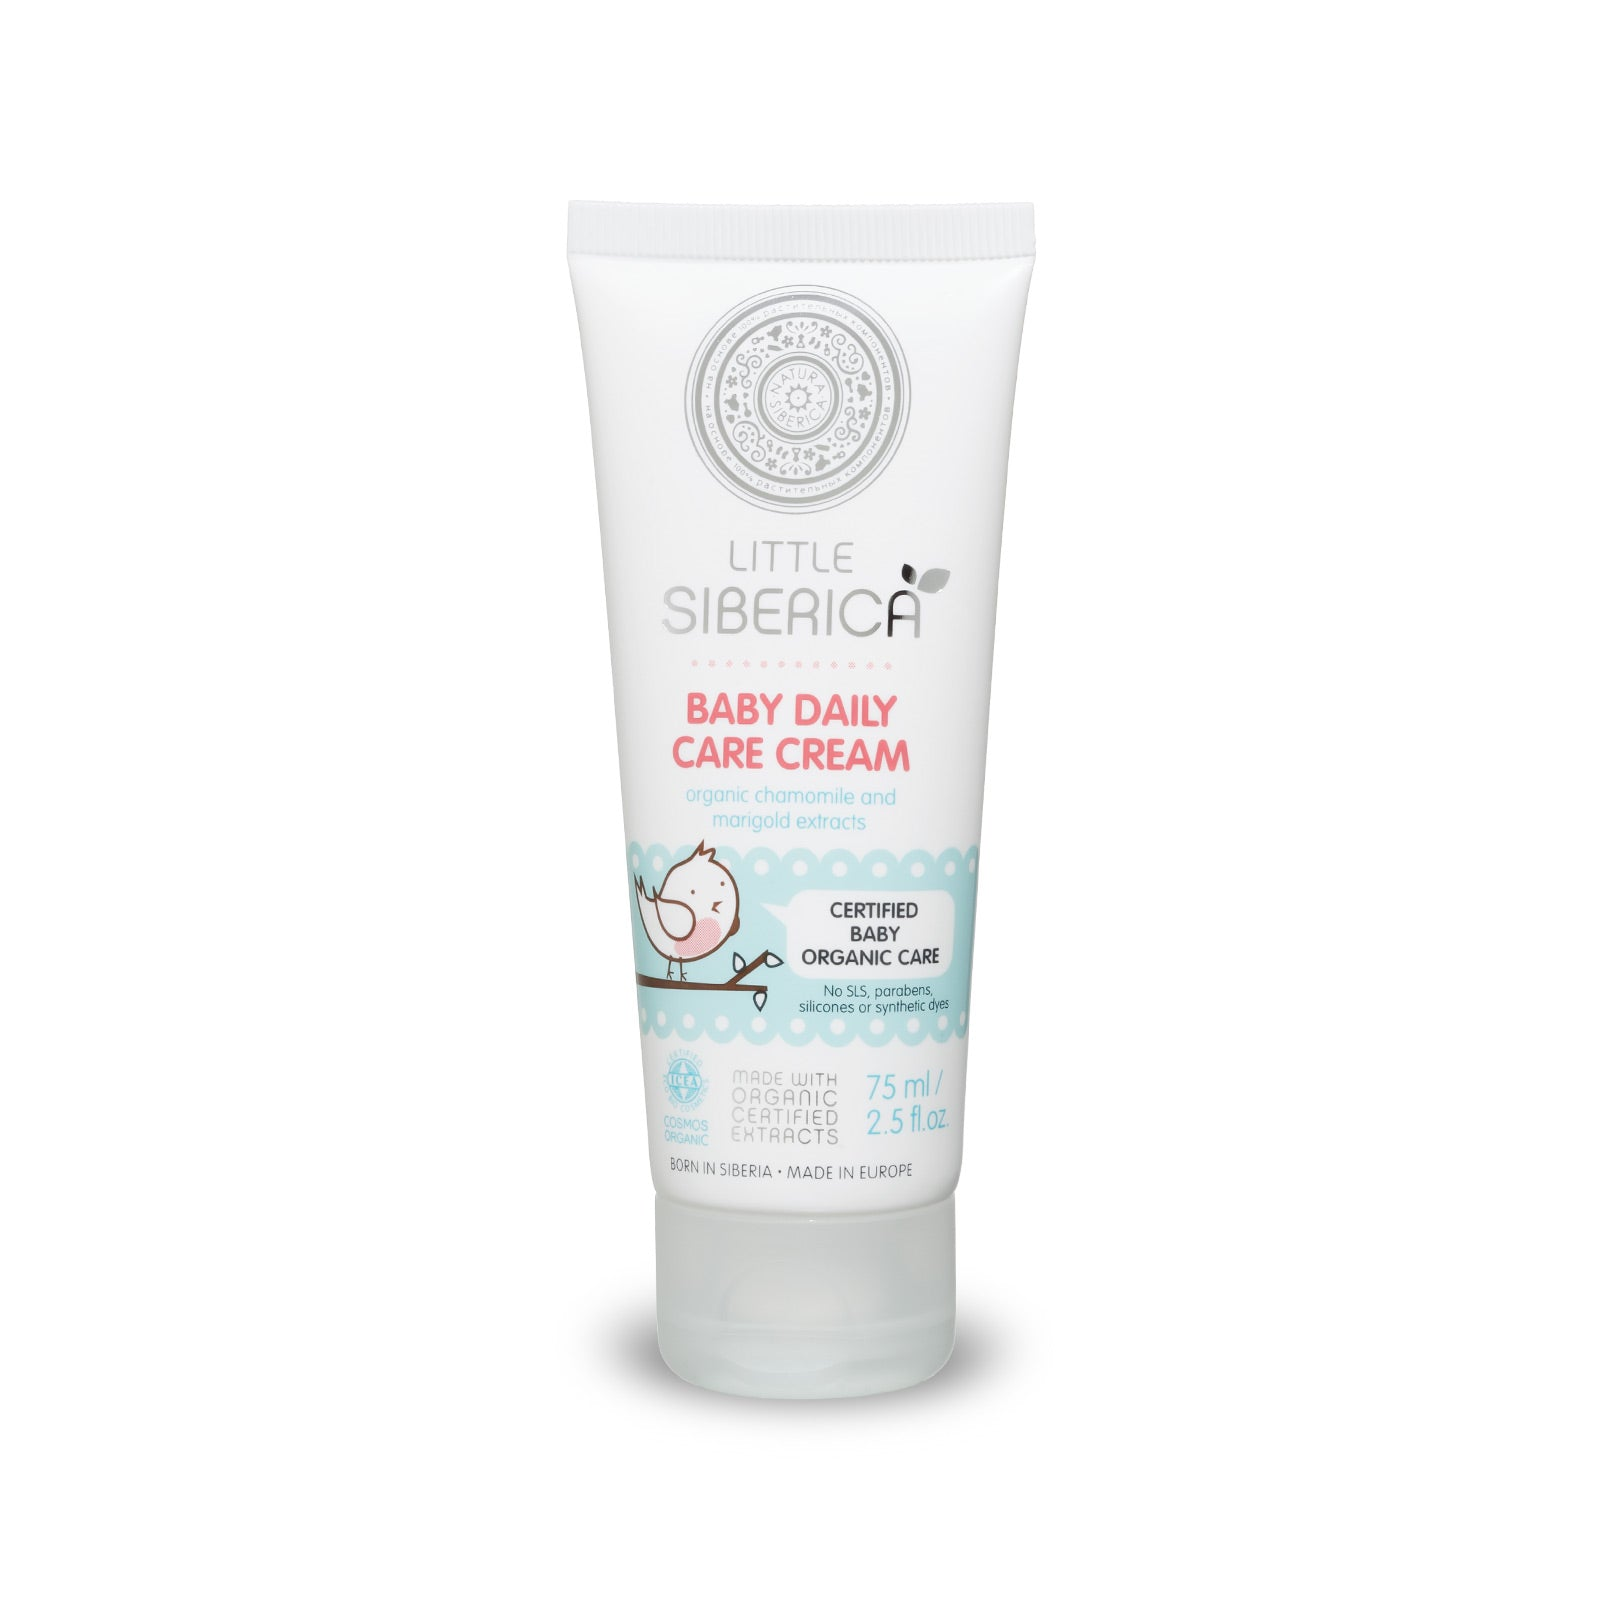 Little Siberica Baby Daily Care Cream, 75 ml